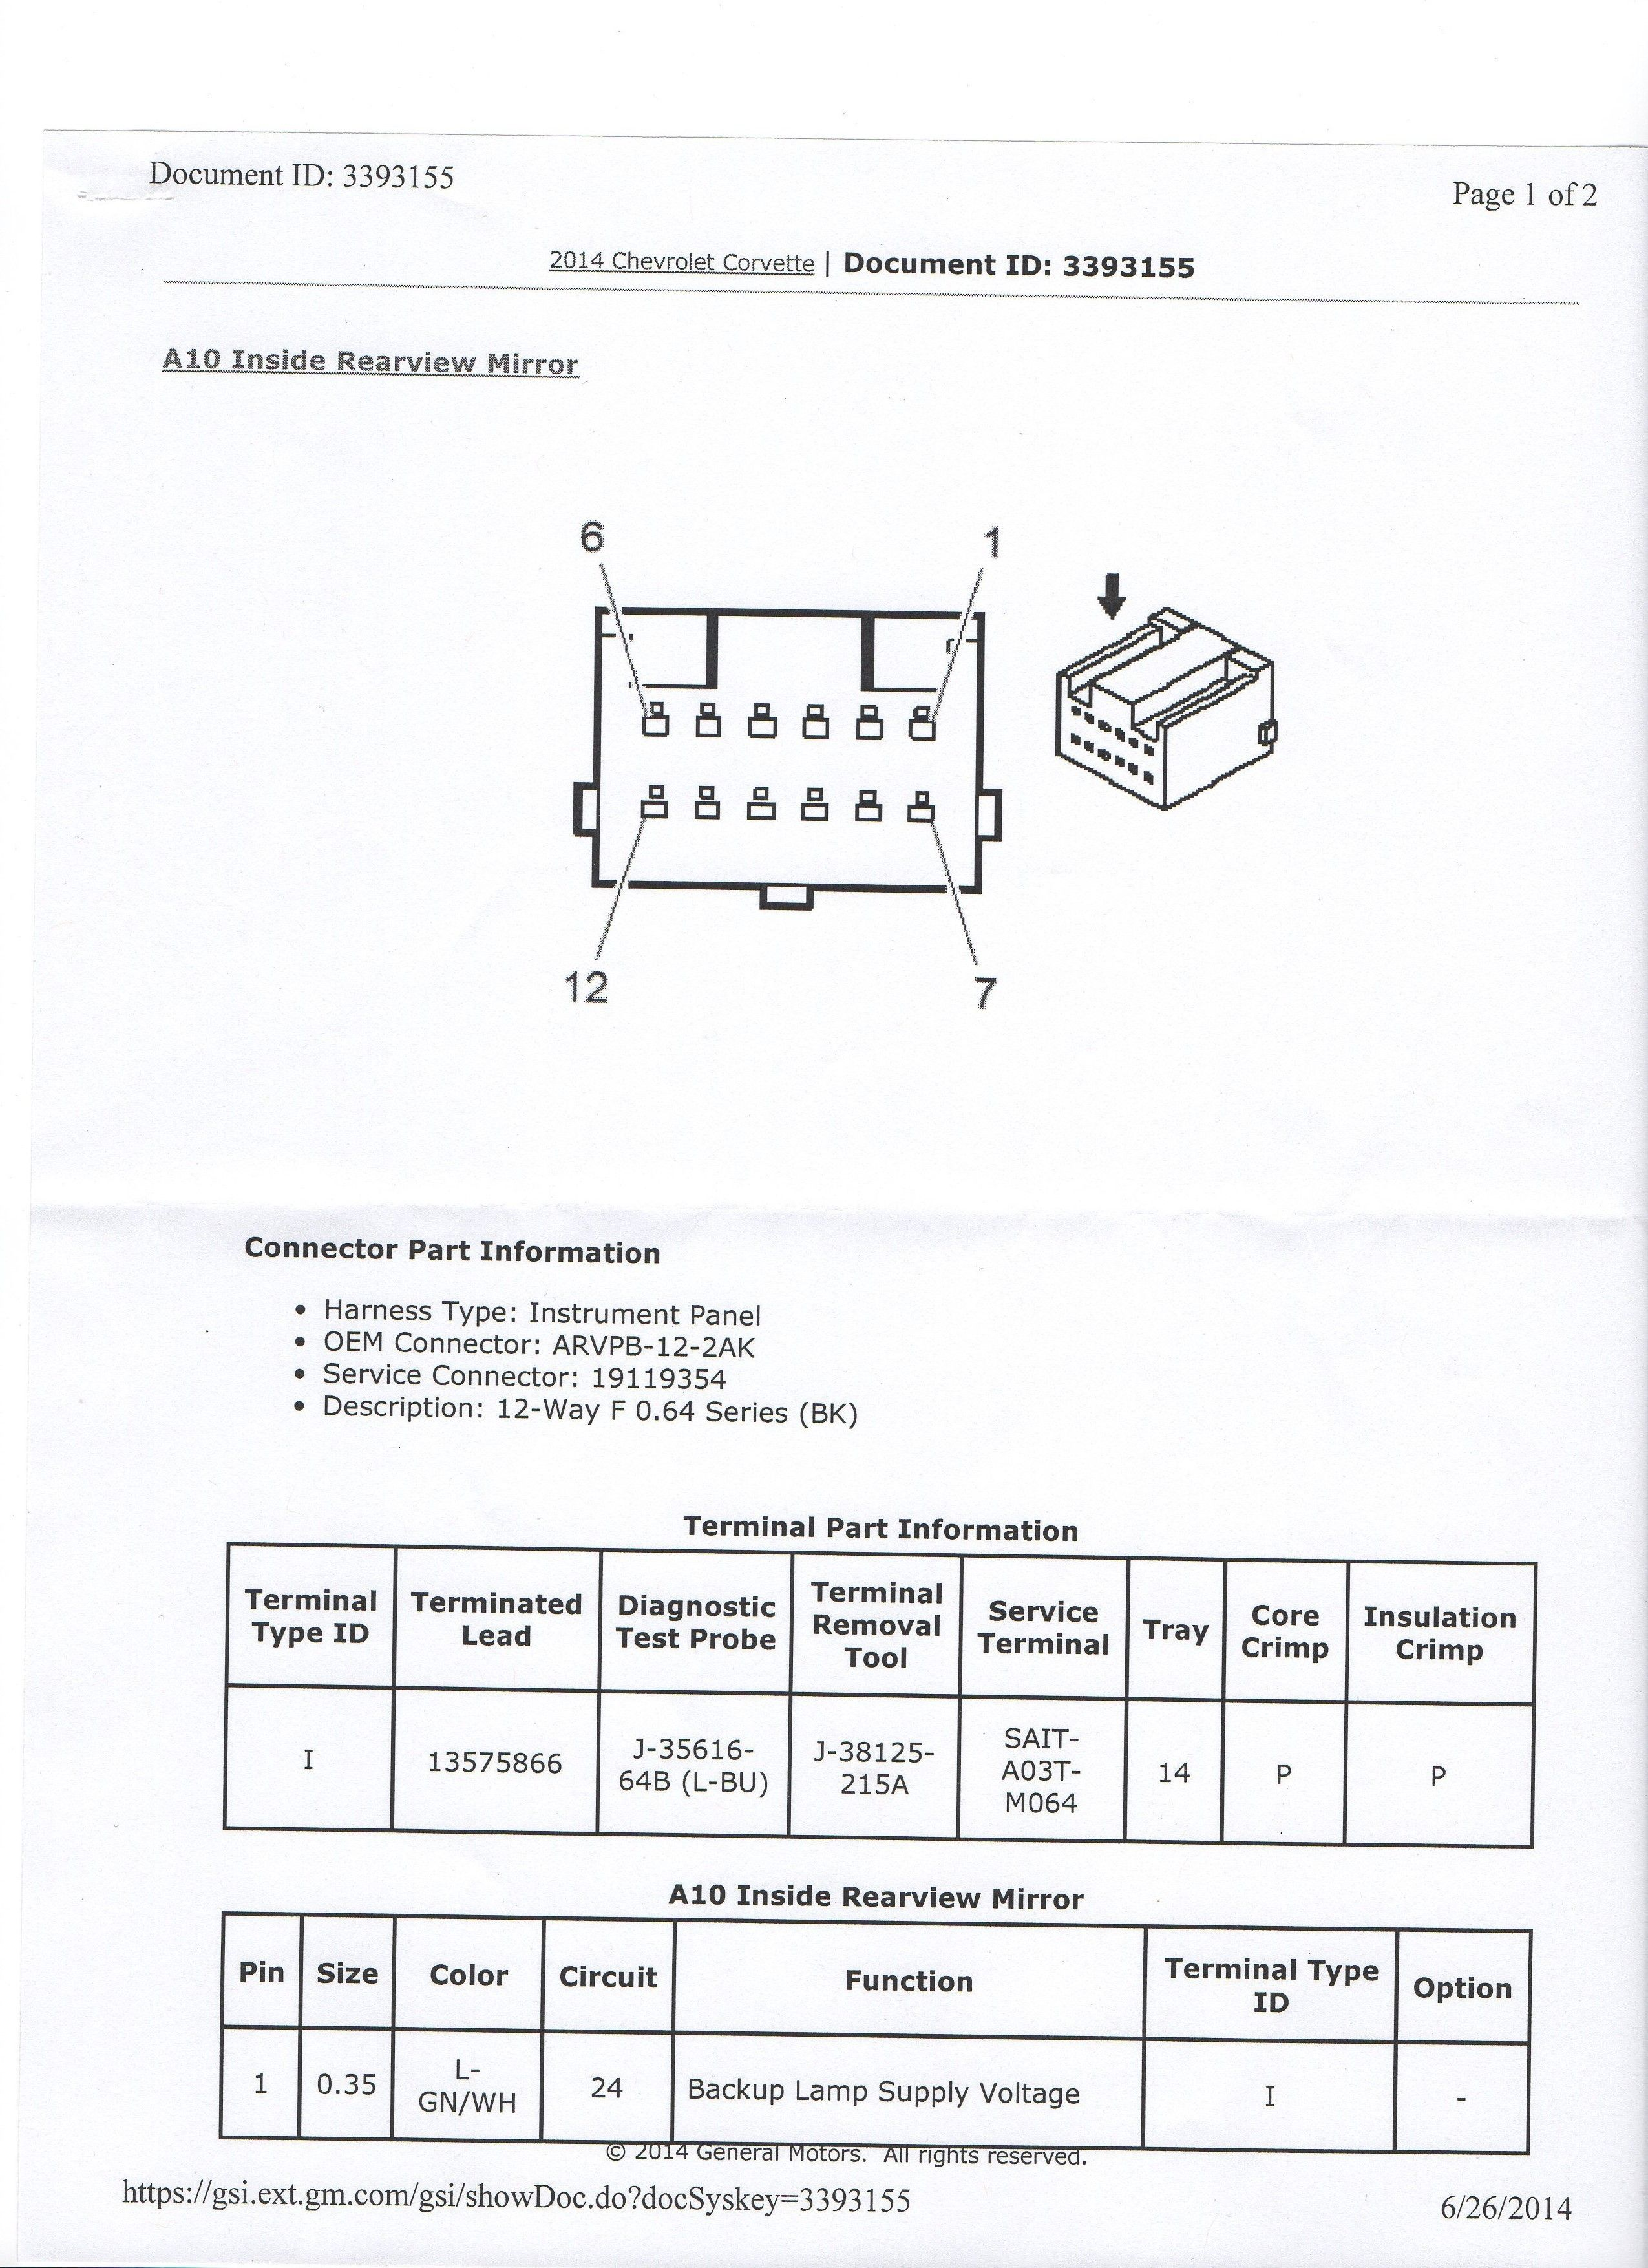 Gm Rear View Mirror Wiring Diagram from i.pinimg.com